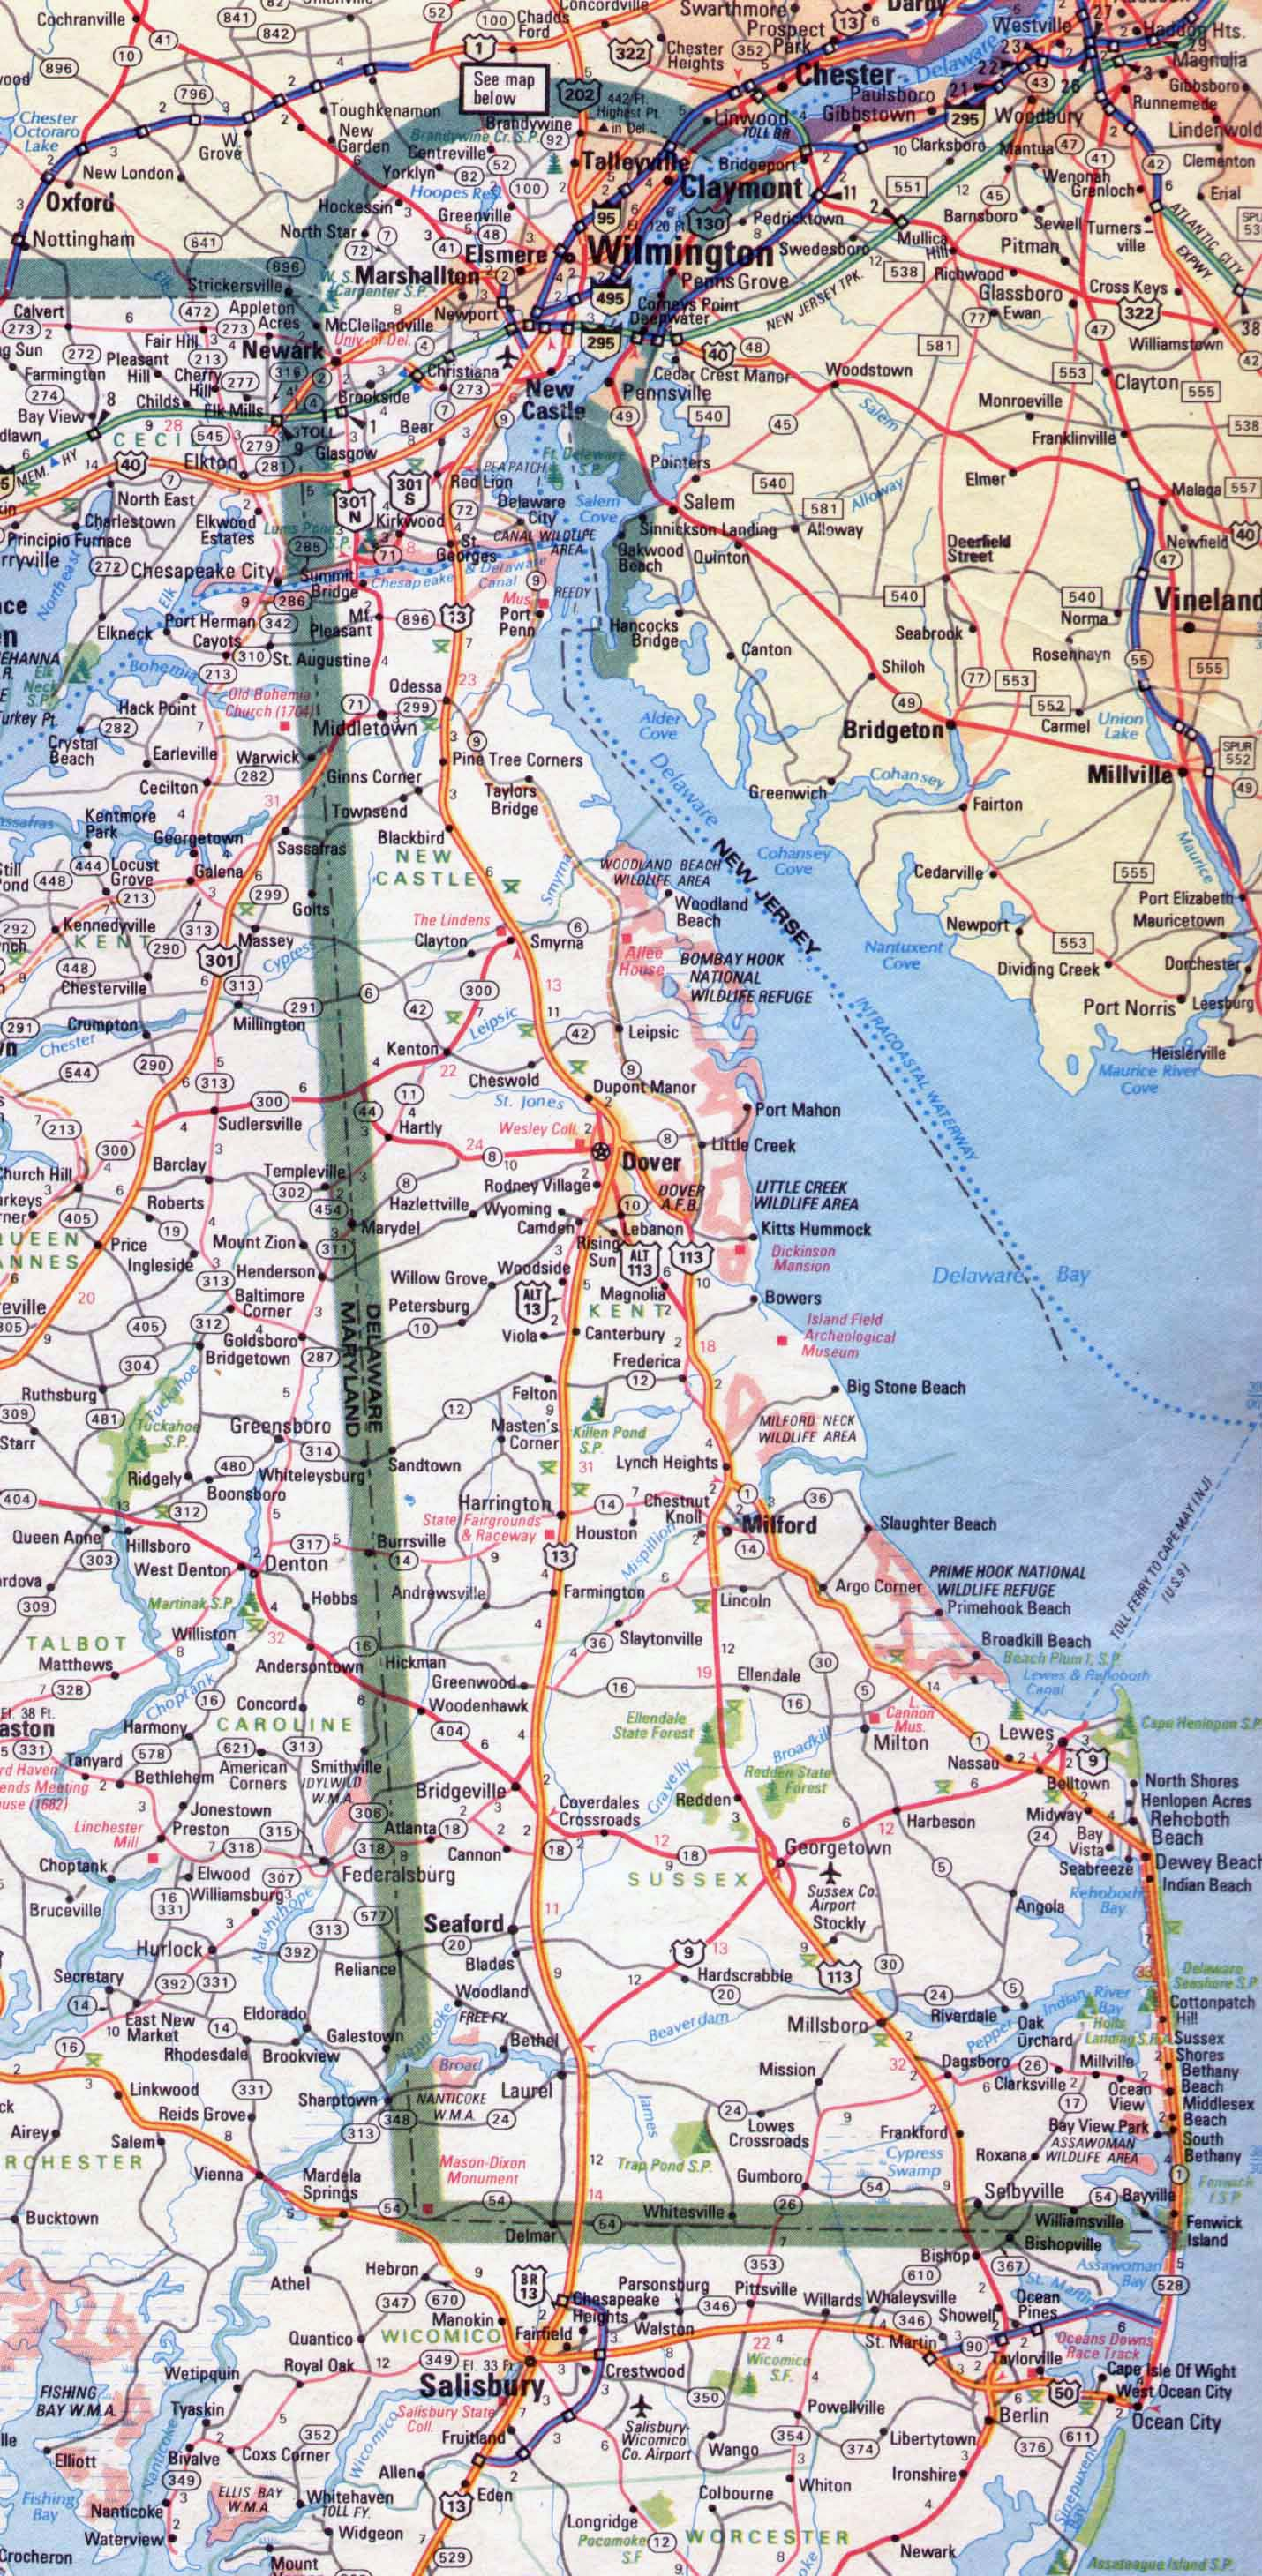 maps of the united states with cities with Large Roads And Highways Map Of Delaware State 1983 on Large Roads And Highways Map Of Delaware State 1983 moreover I 95 South Carolina Map besides Detailed Old Administrative Map Of Arkansas State 1892 as well Boout as well Where Is Matera.